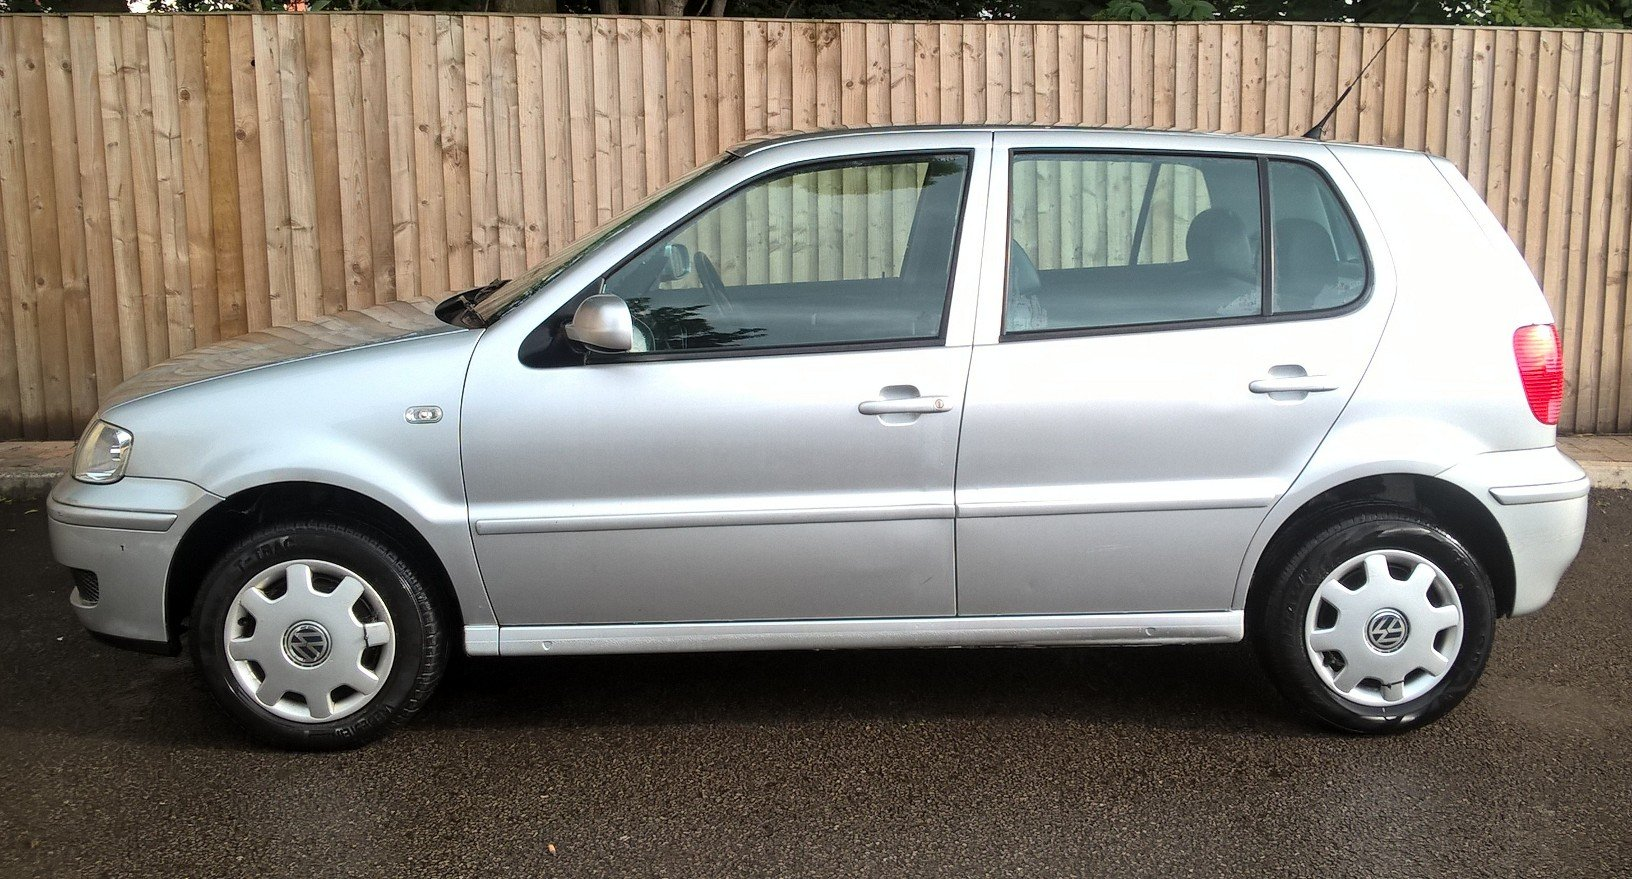 2001 VW Polo 1.4 'Match', 24K miles, 31.5.2020 MOT For Sale (picture 1 of 6)